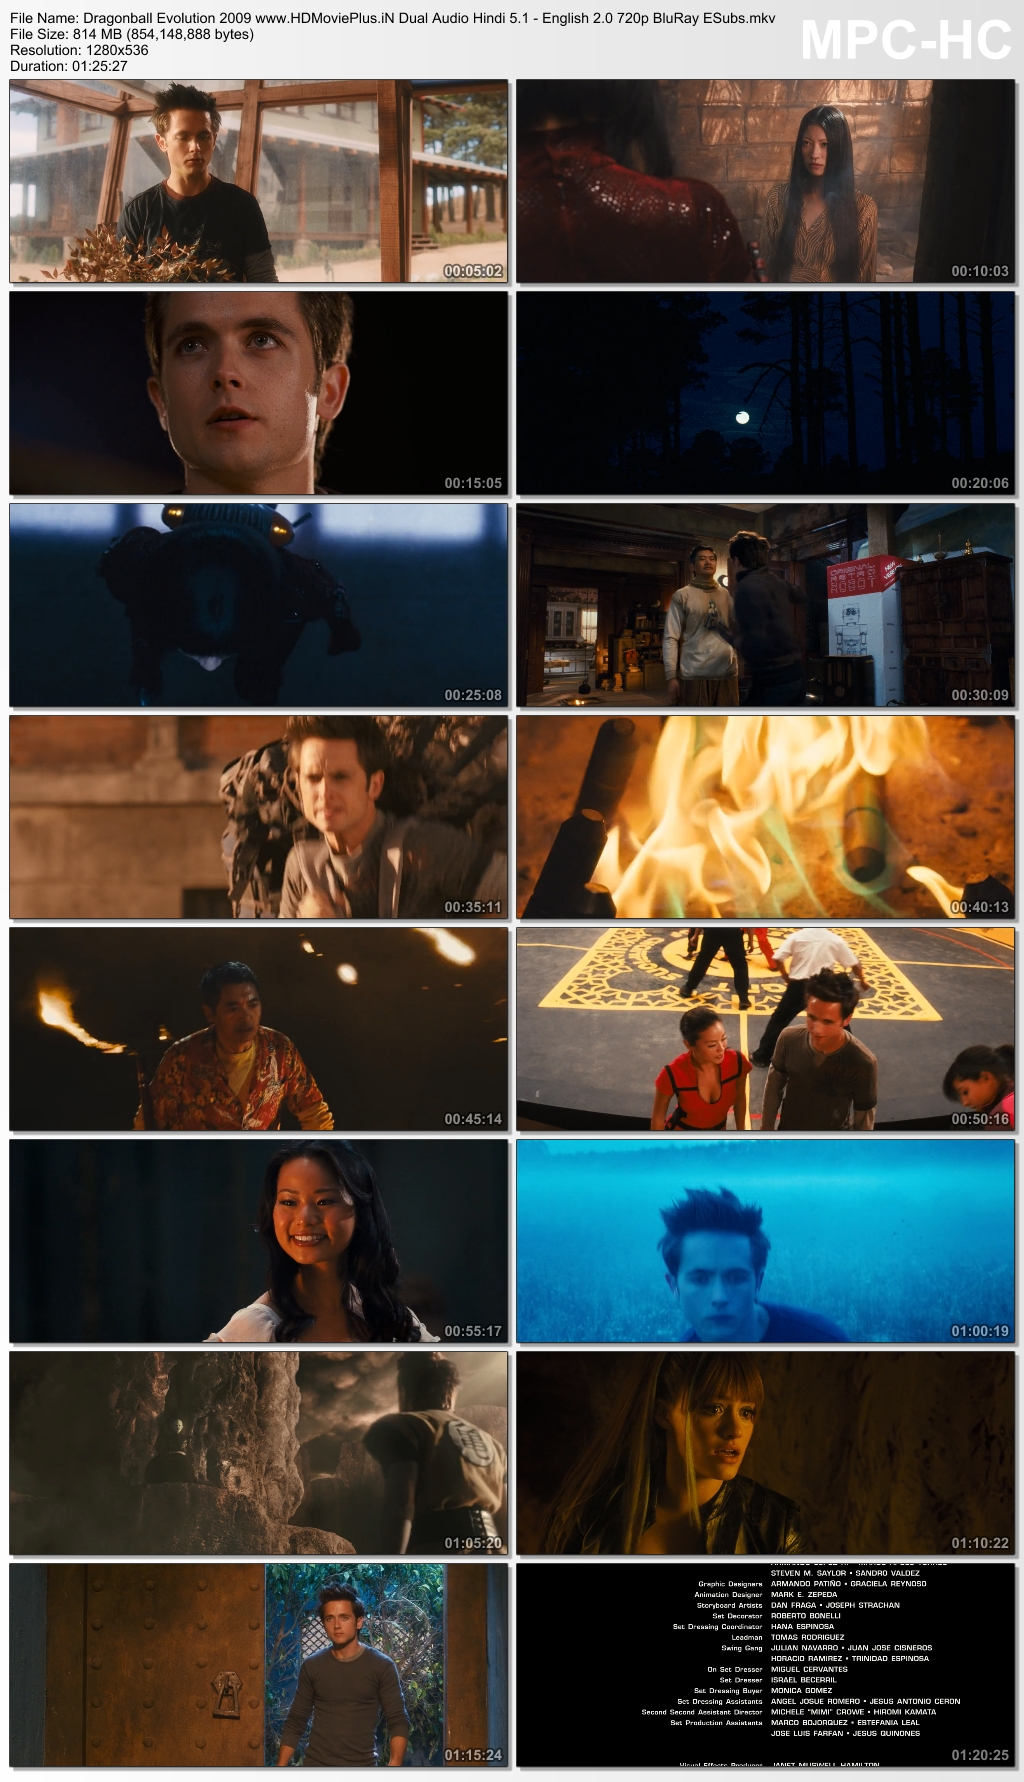 Dragonball Evolution (2009) Dual Audio